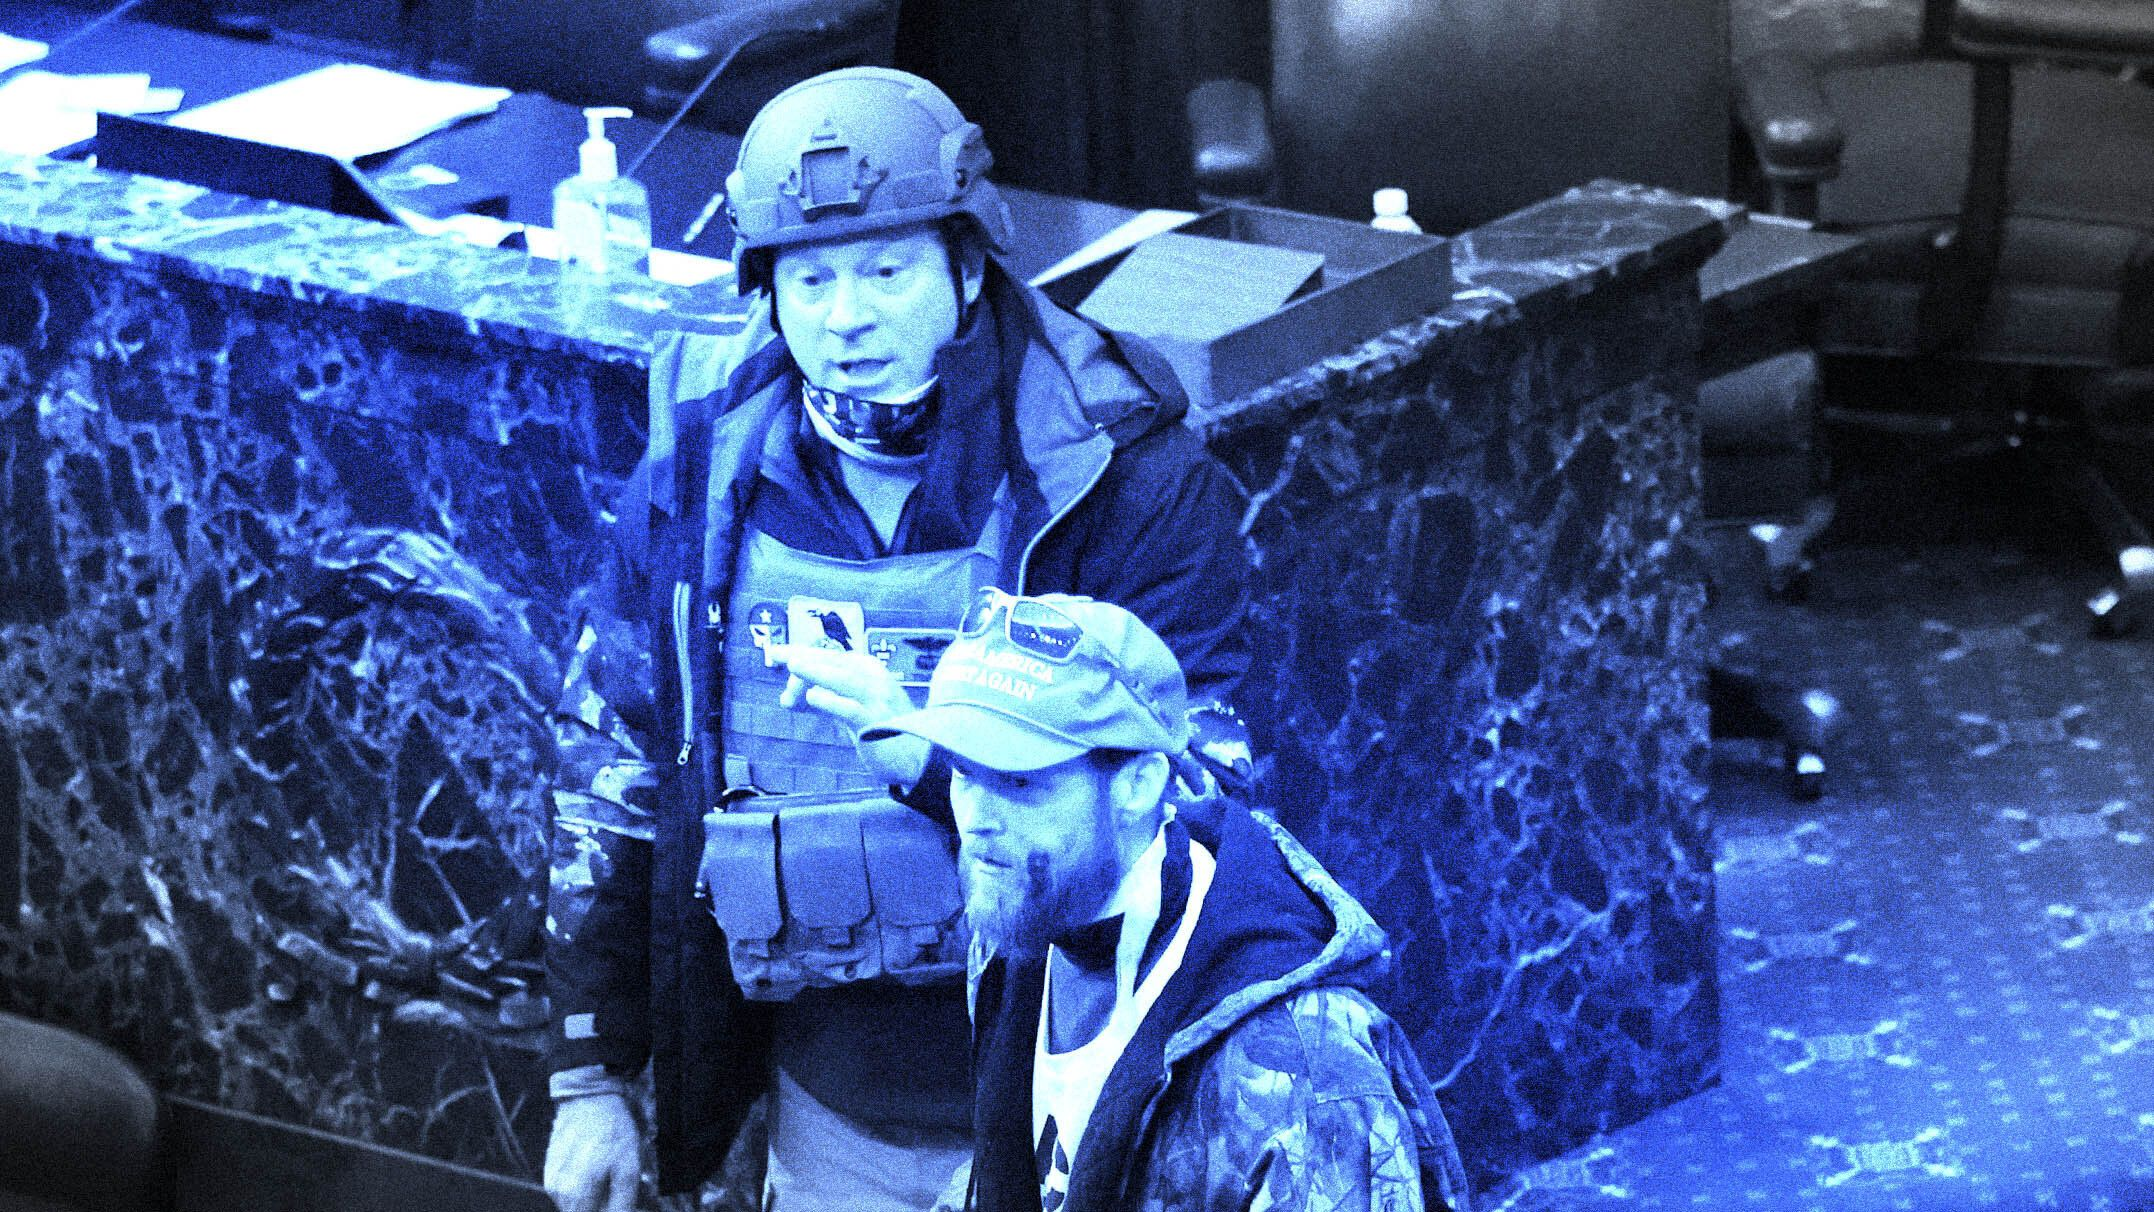 Larry Rendall Brock Jr. wears a combat helmet and vest after entering the Senate chamber on Jan. 6 during the Capitol riot in